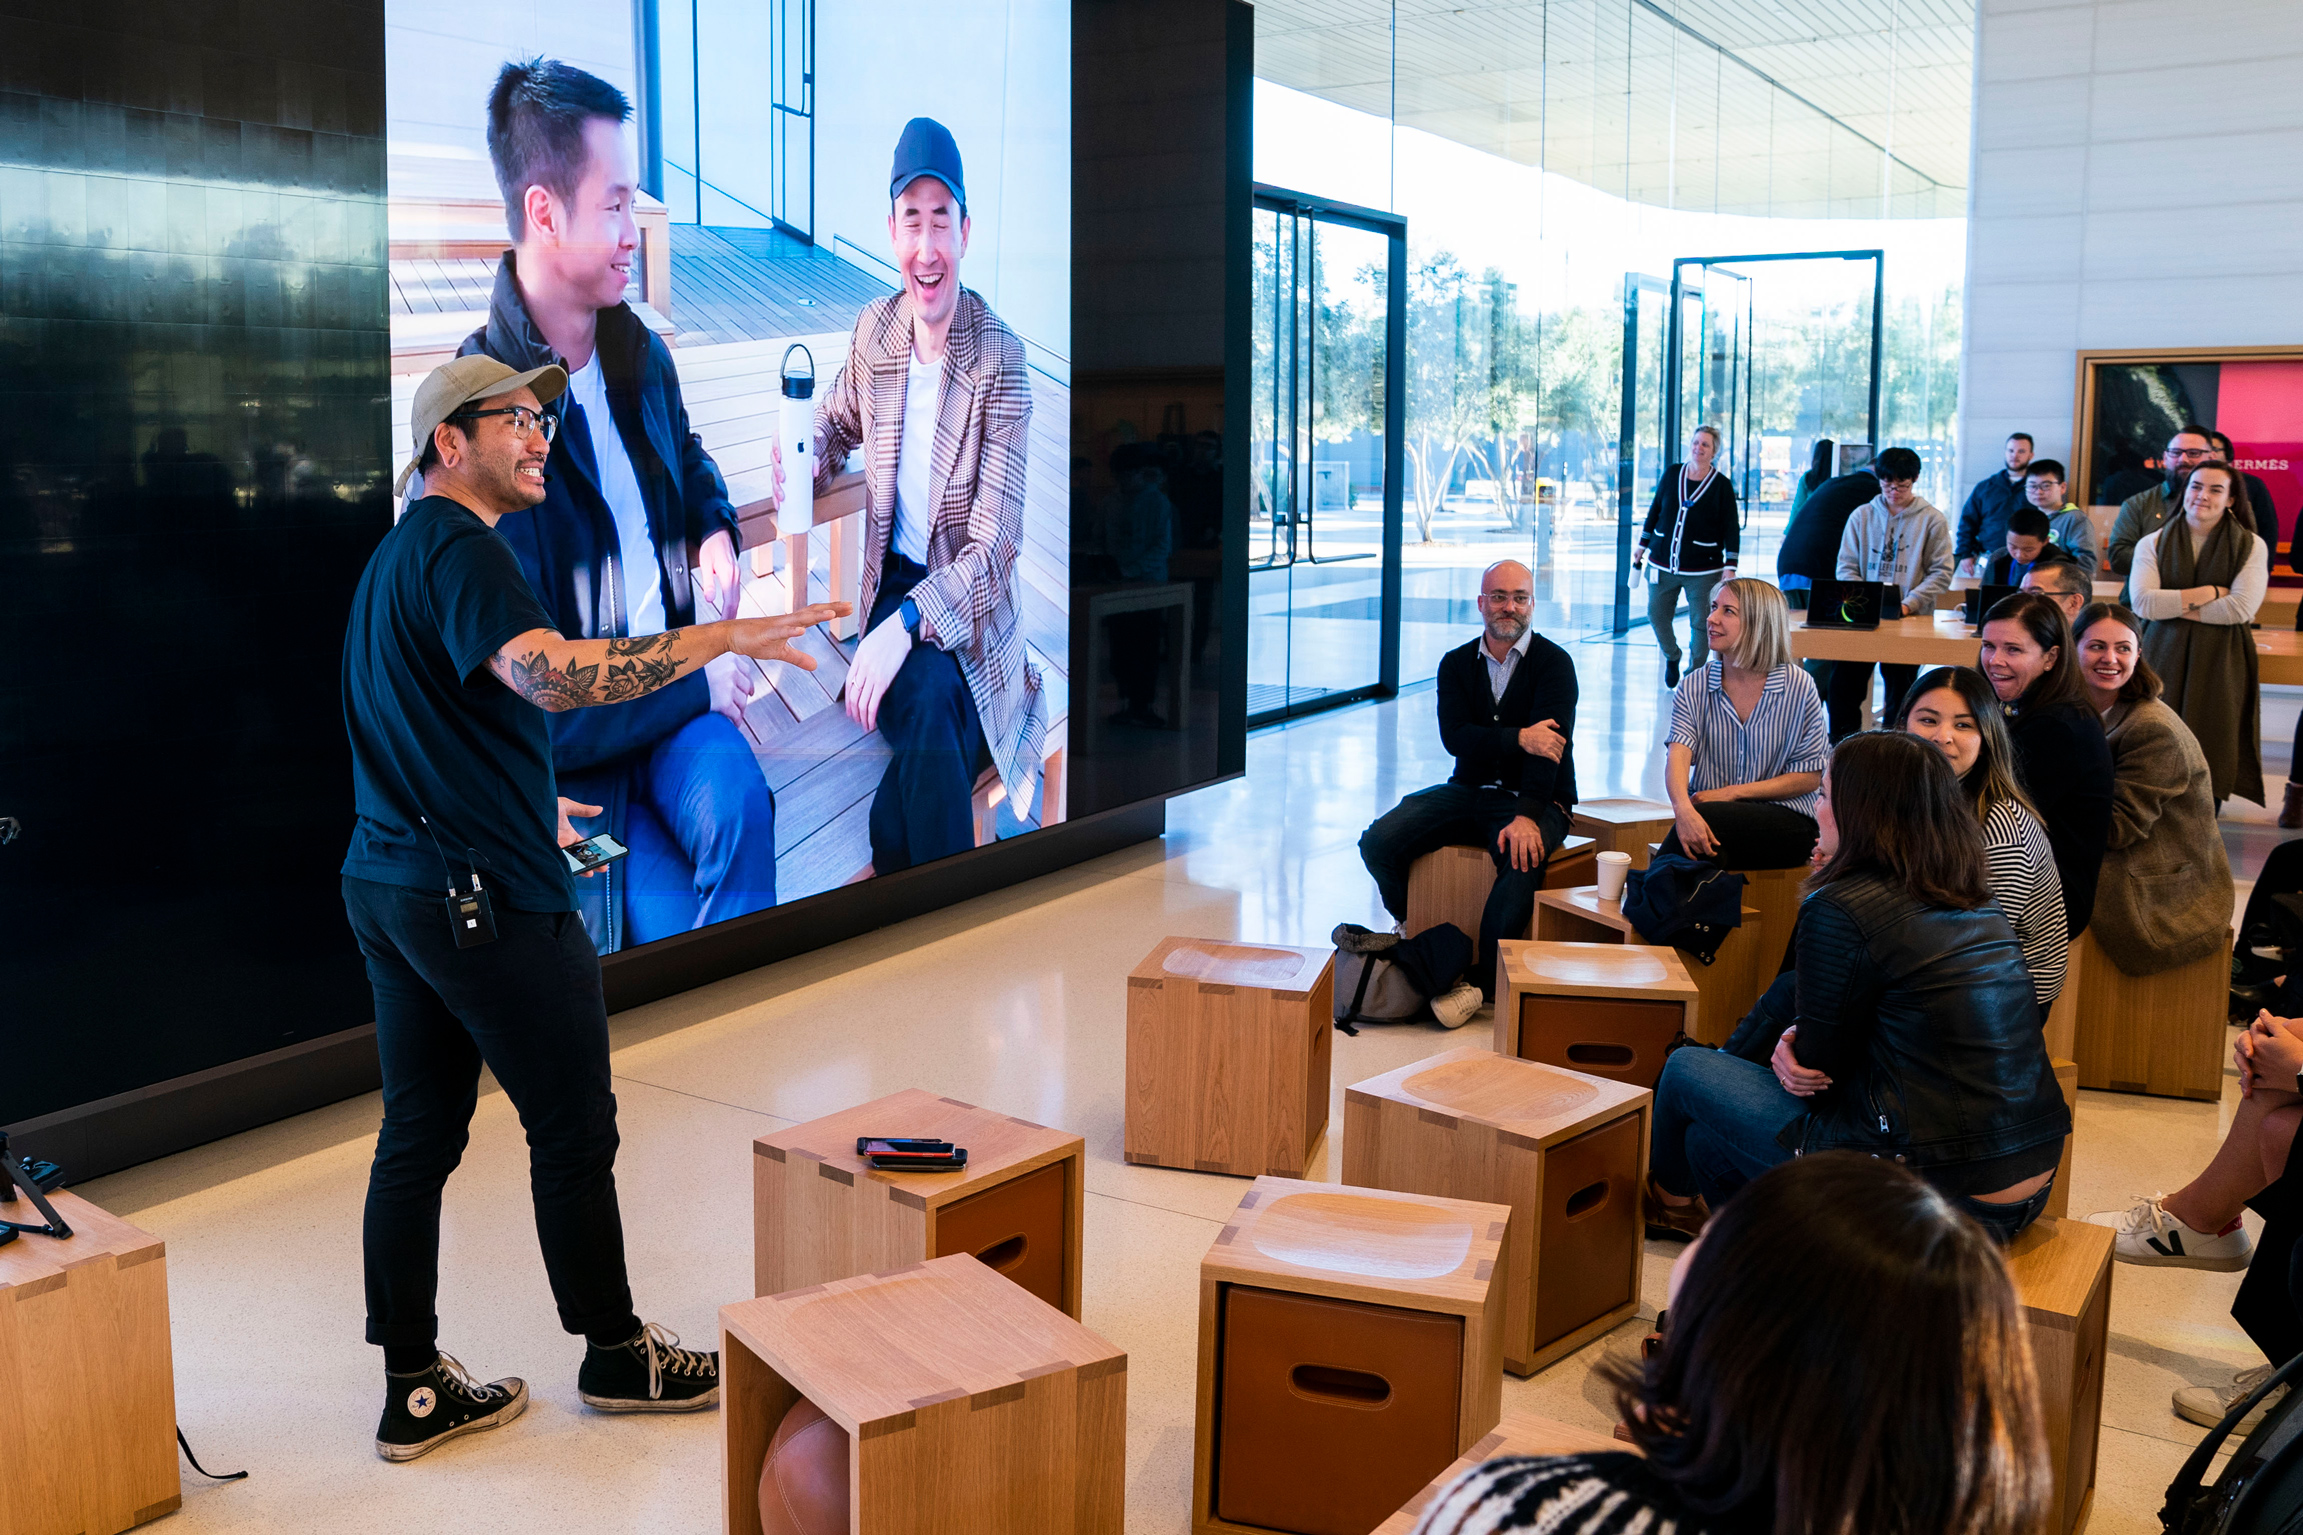 At the end of every session, participants are invited to share their work and celebrate the creations of their peers. (Photo: Apple)